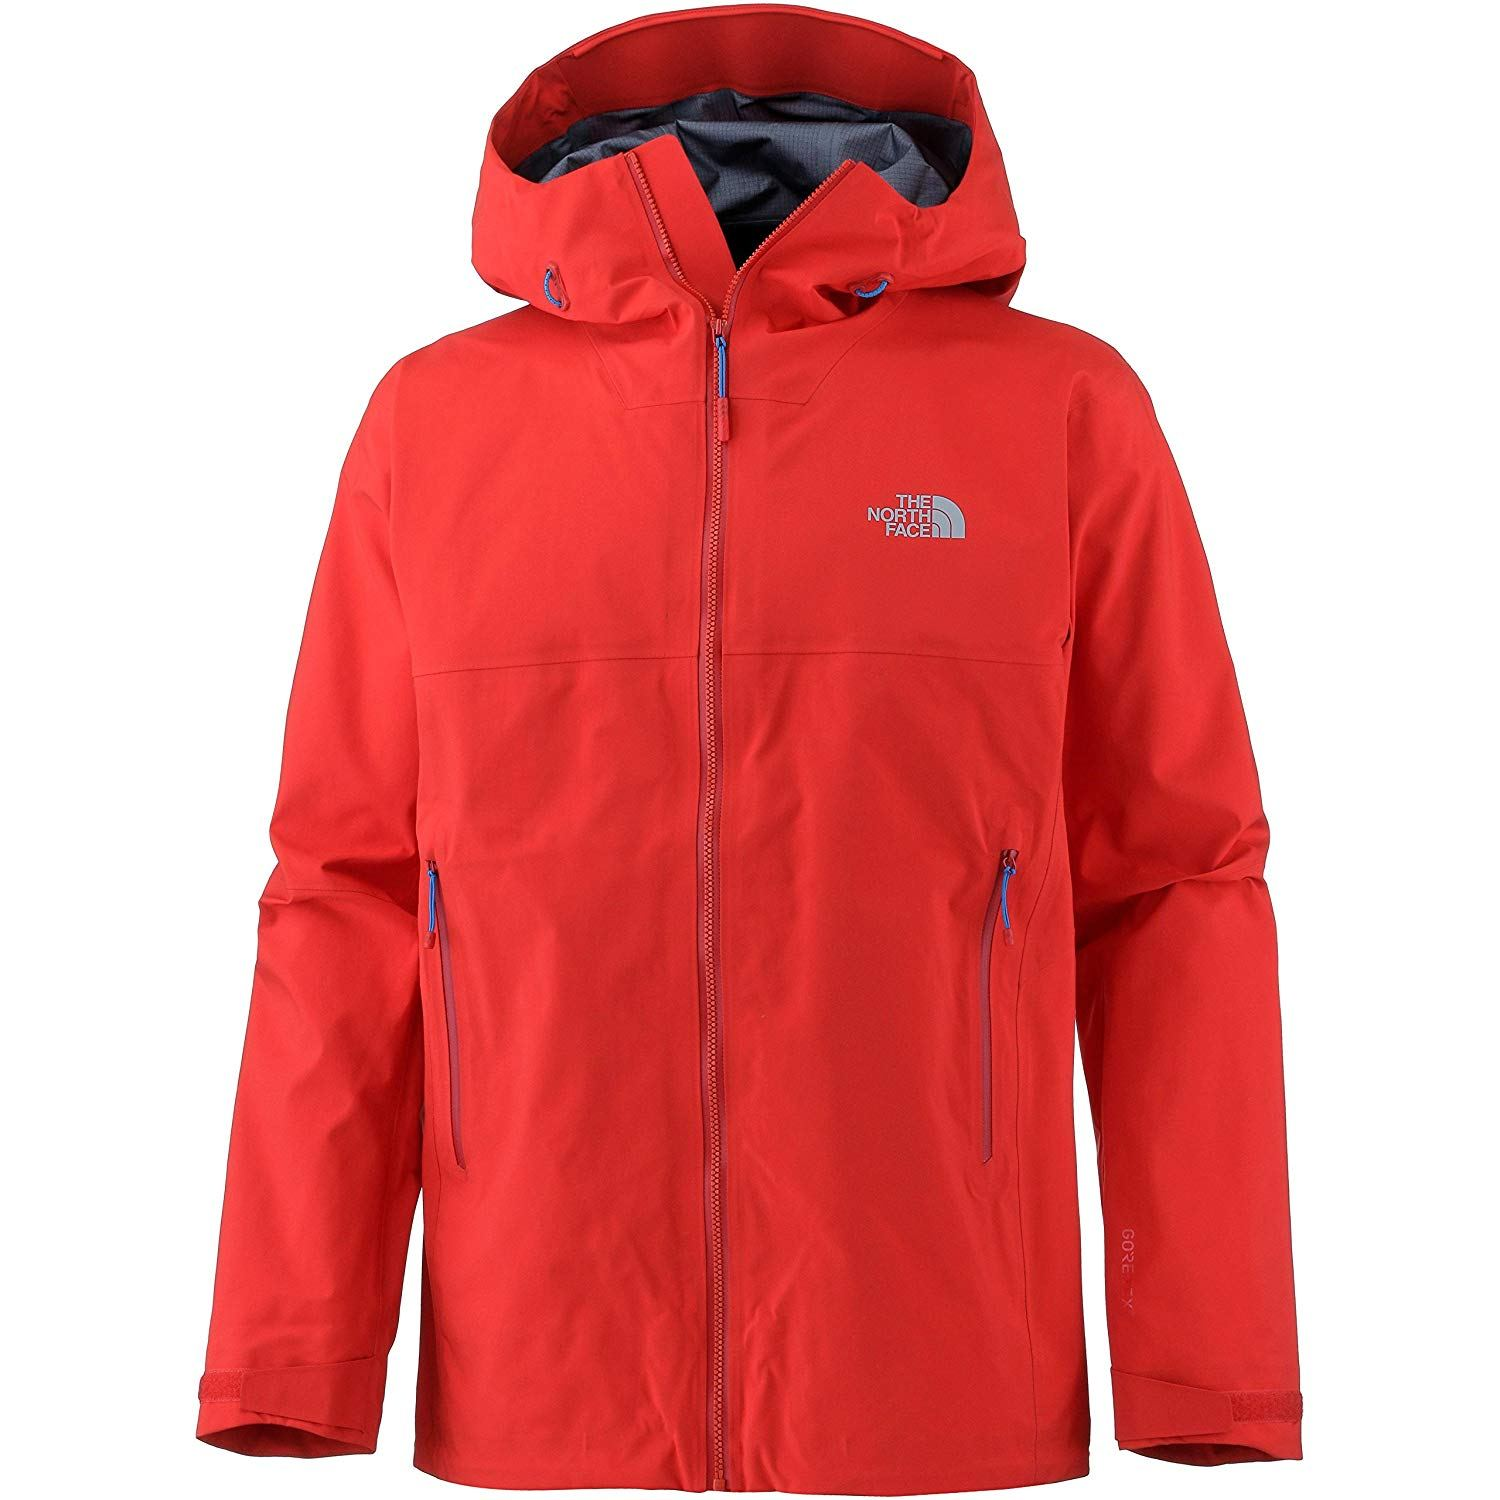 The North Face Point Five Gore-tex Pro Shell Ceket